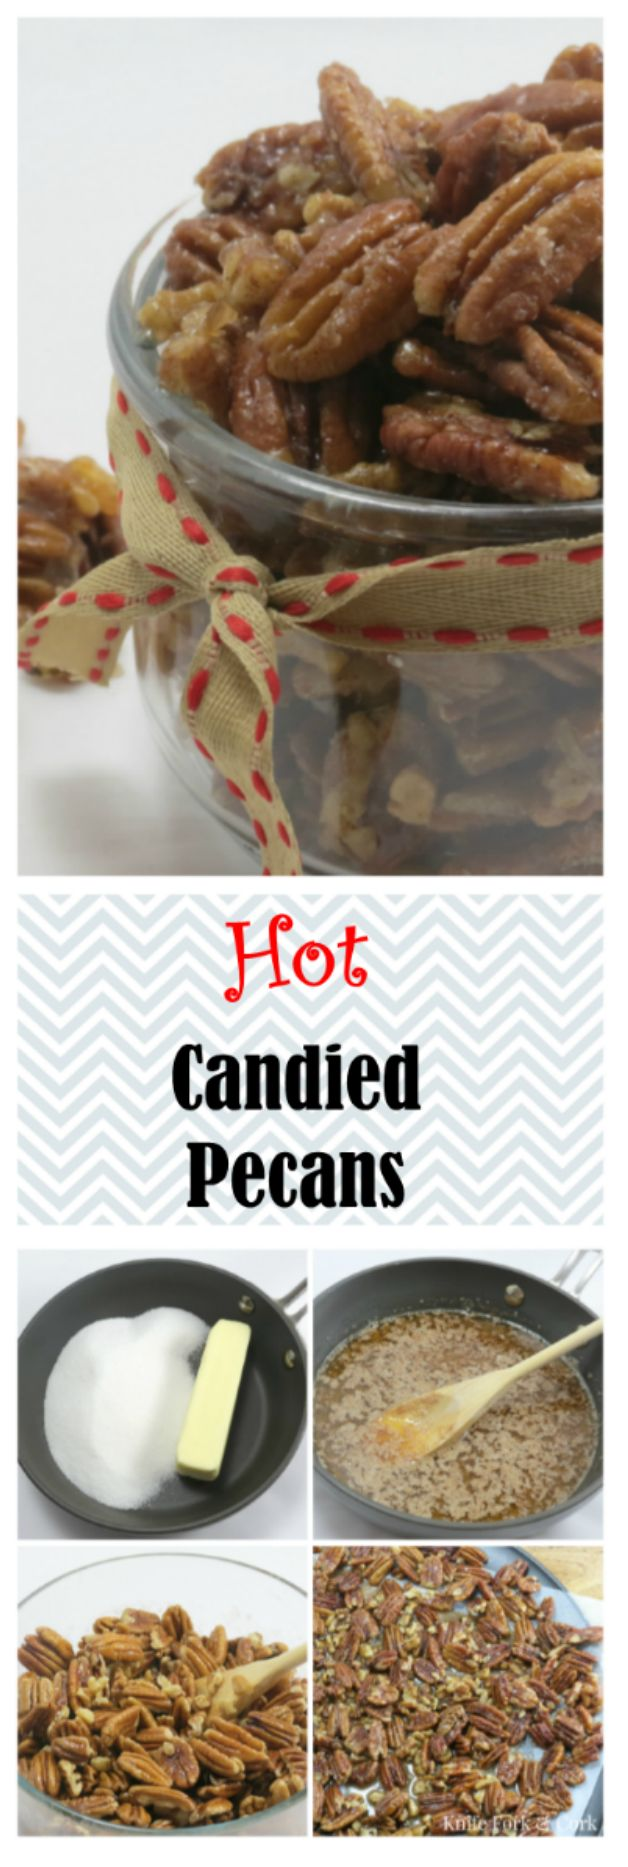 Delicious, addictive hot candied pecan nuts. Perfectly seasoned with cinnamon, cayenne and sugar. Perfect for a party appetizer or holiday gift giving. Easy to follow photo tutorial. Recipe is ready in 30 minutes or less. @knifeforkcork